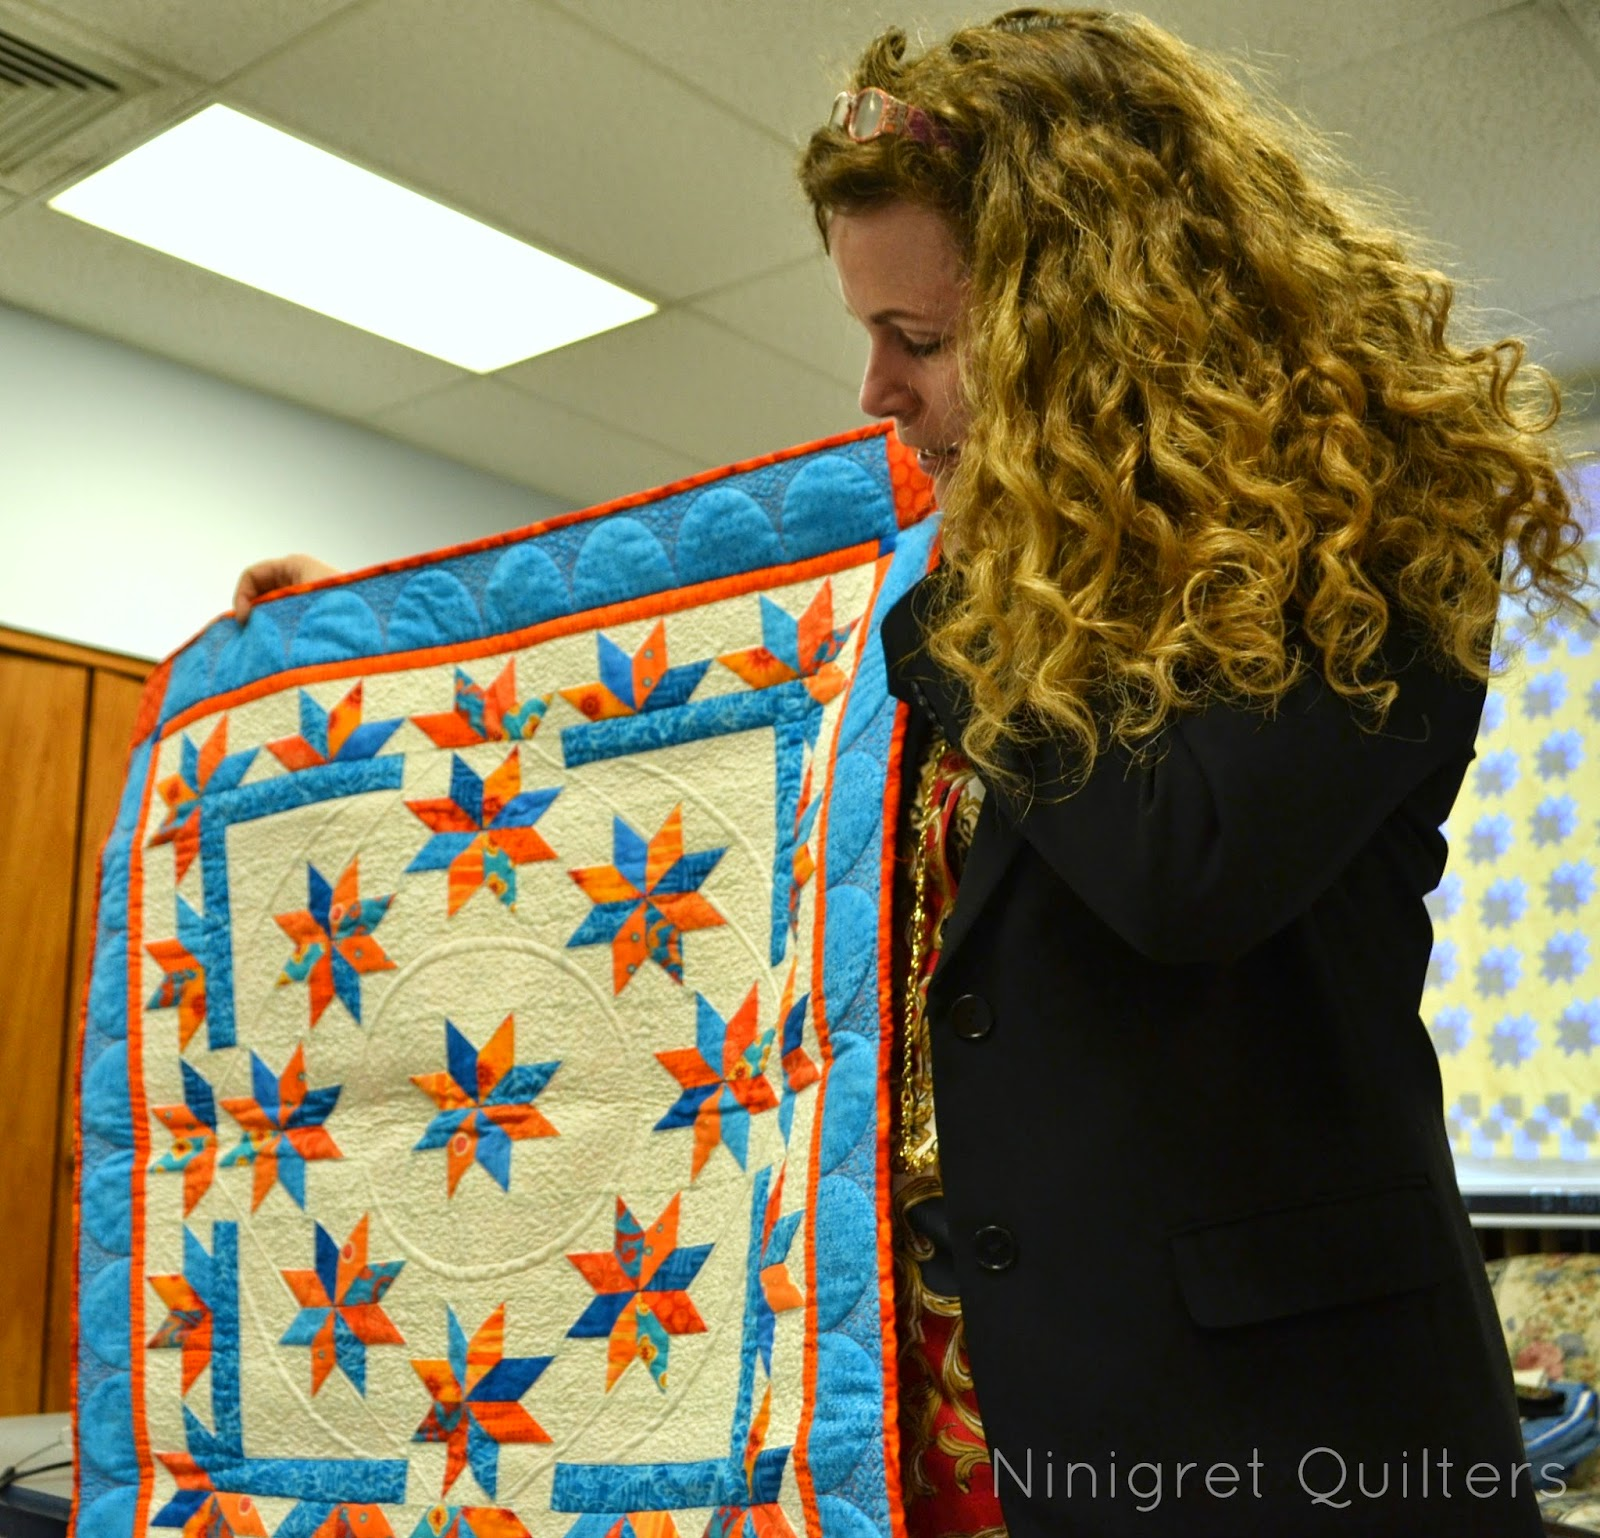 Ninigret Quilters: March Meeting with Marie Bostwick : marie bostwick quilt patterns - Adamdwight.com